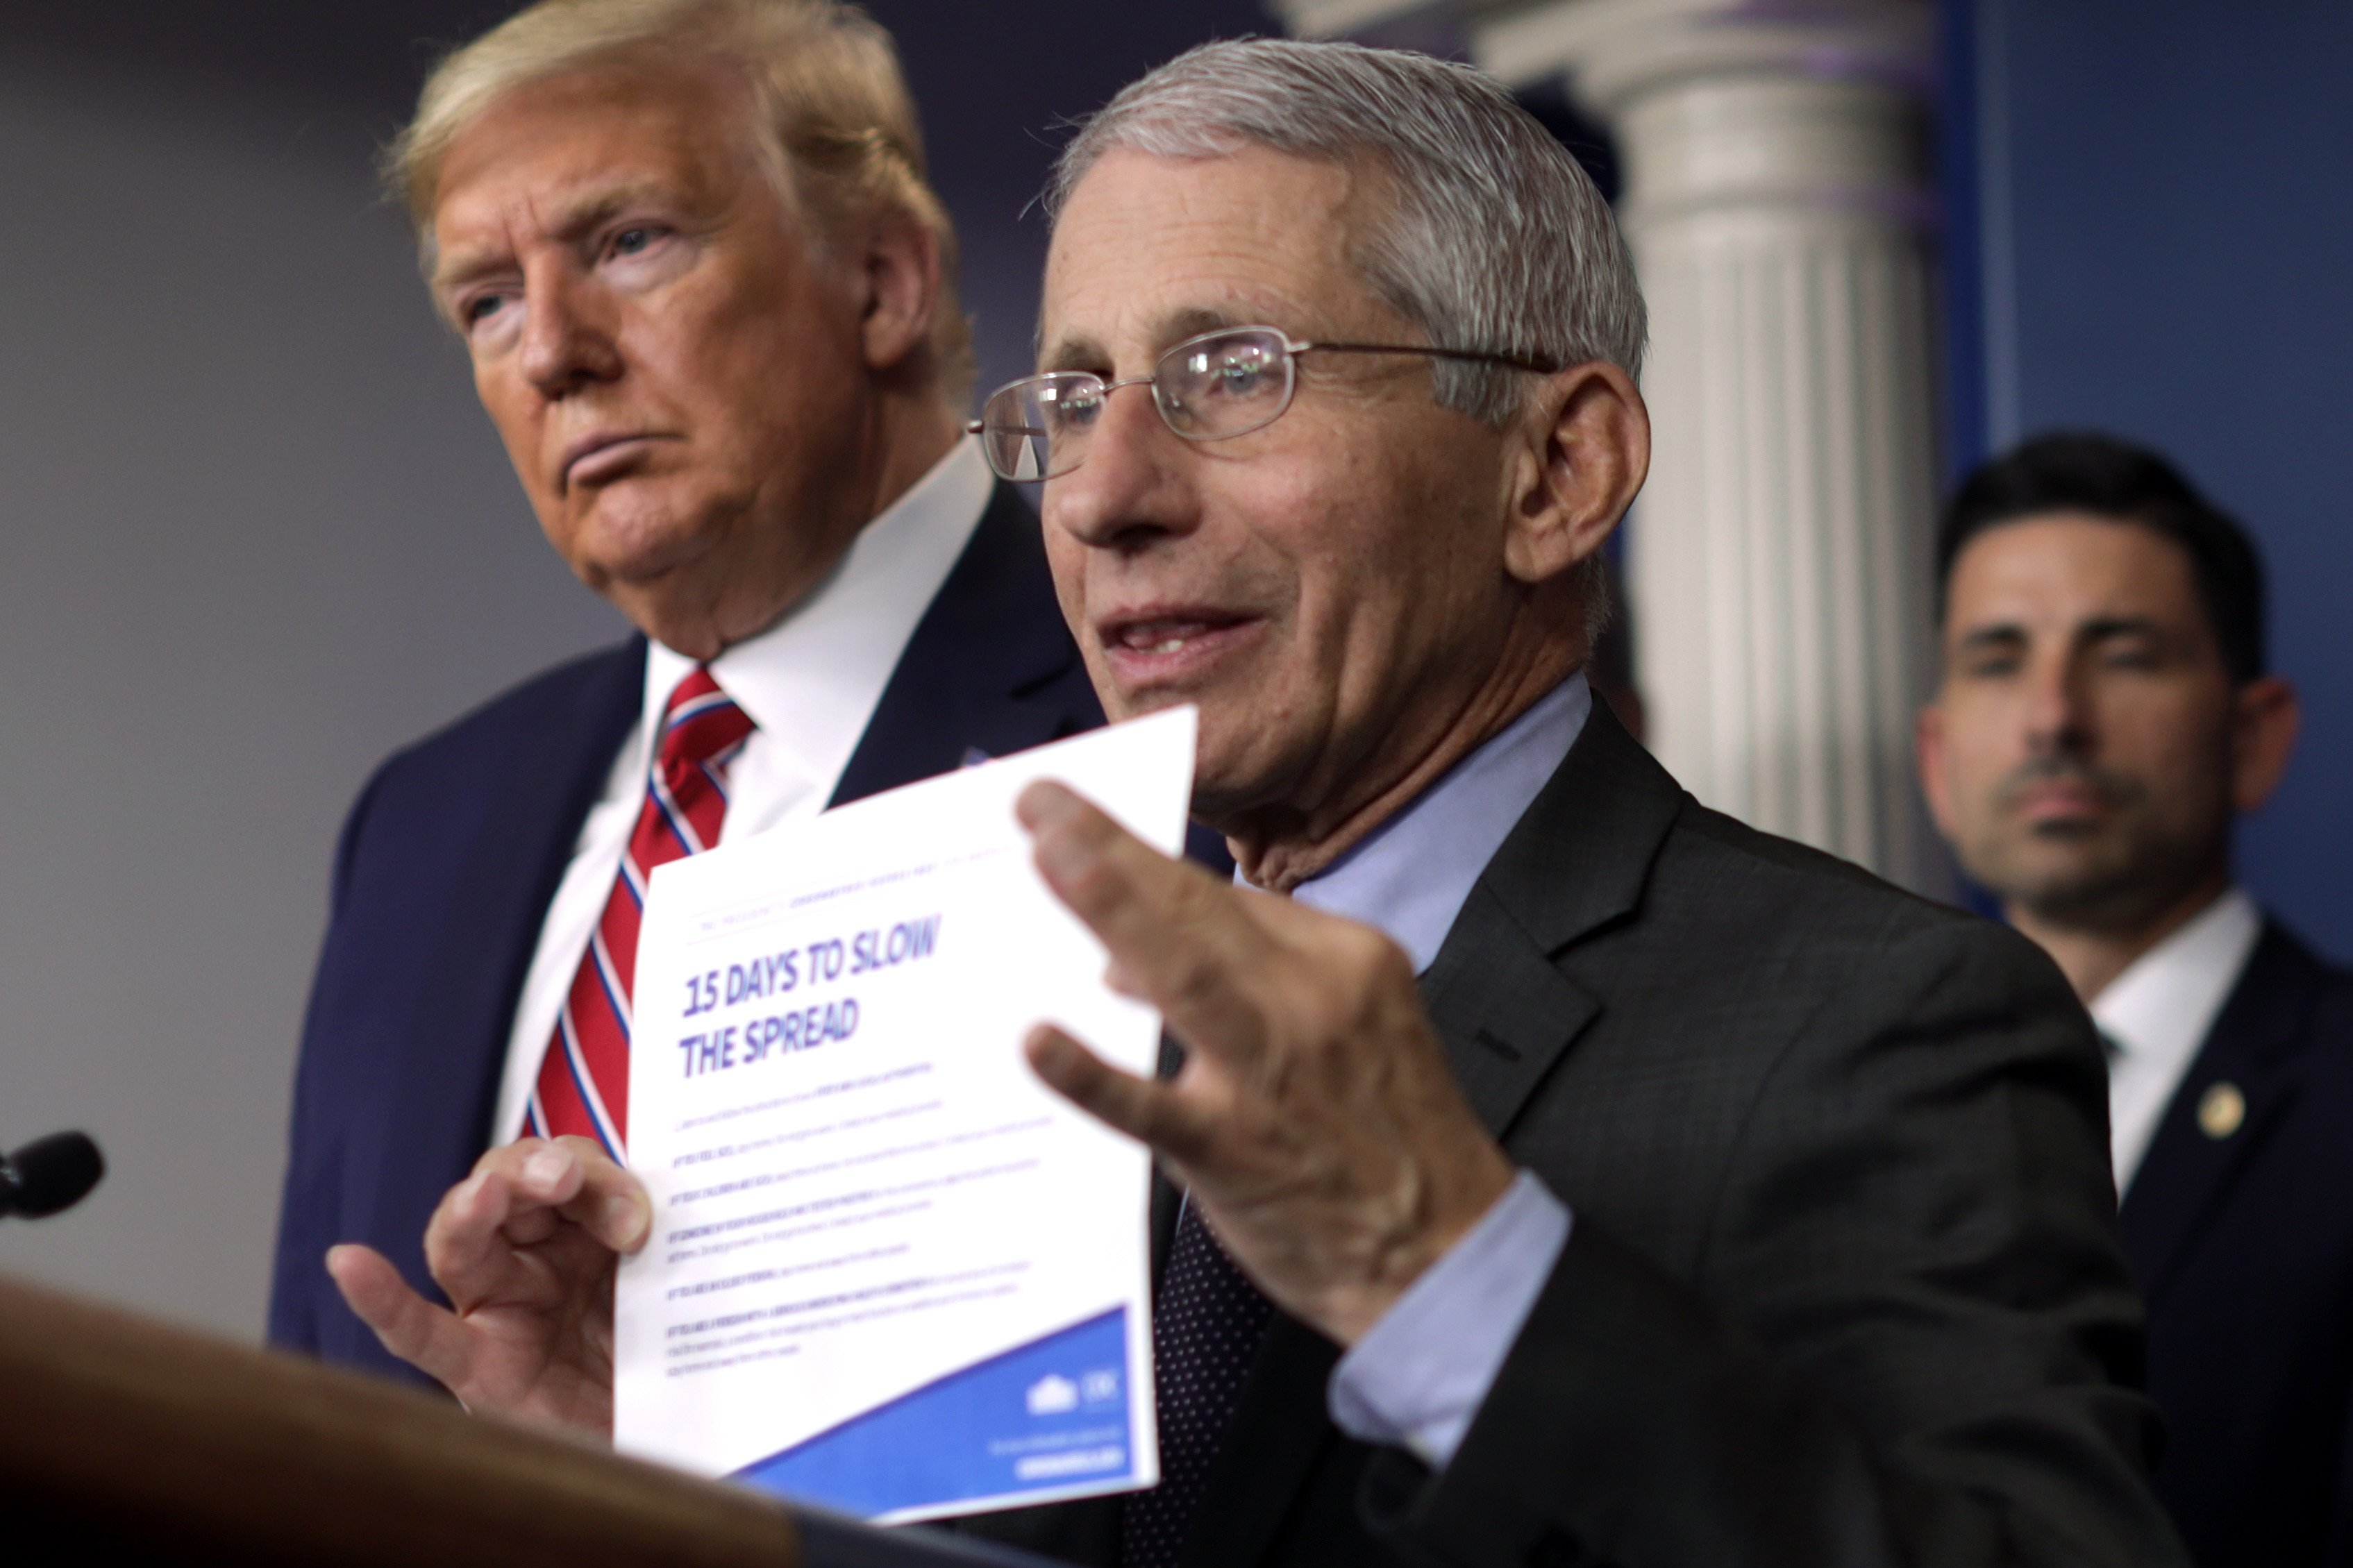 """WASHINGTON, DC - MARCH 20: Director of the National Institute of Allergy and Infectious Diseases Dr. Anthony Fauci holds up the """"15 Days to Slow the Spread"""" instruction as U.S. President Donald Trump looks on during a news briefing on the latest development of the coronavirus outbreak in the U.S. at the James Brady Press Briefing Room at the White House March 20, 2020 in Washington, DC. With deaths caused by the coronavirus rising and foreseeable economic turmoil, the Senate is working on legislation for a $1 trillion aid package to deal with the COVID-19 pandemic. President Trump announced that tax day will be delayed from April 15 to July 15. (Photo by Alex Wong/Getty Images)"""